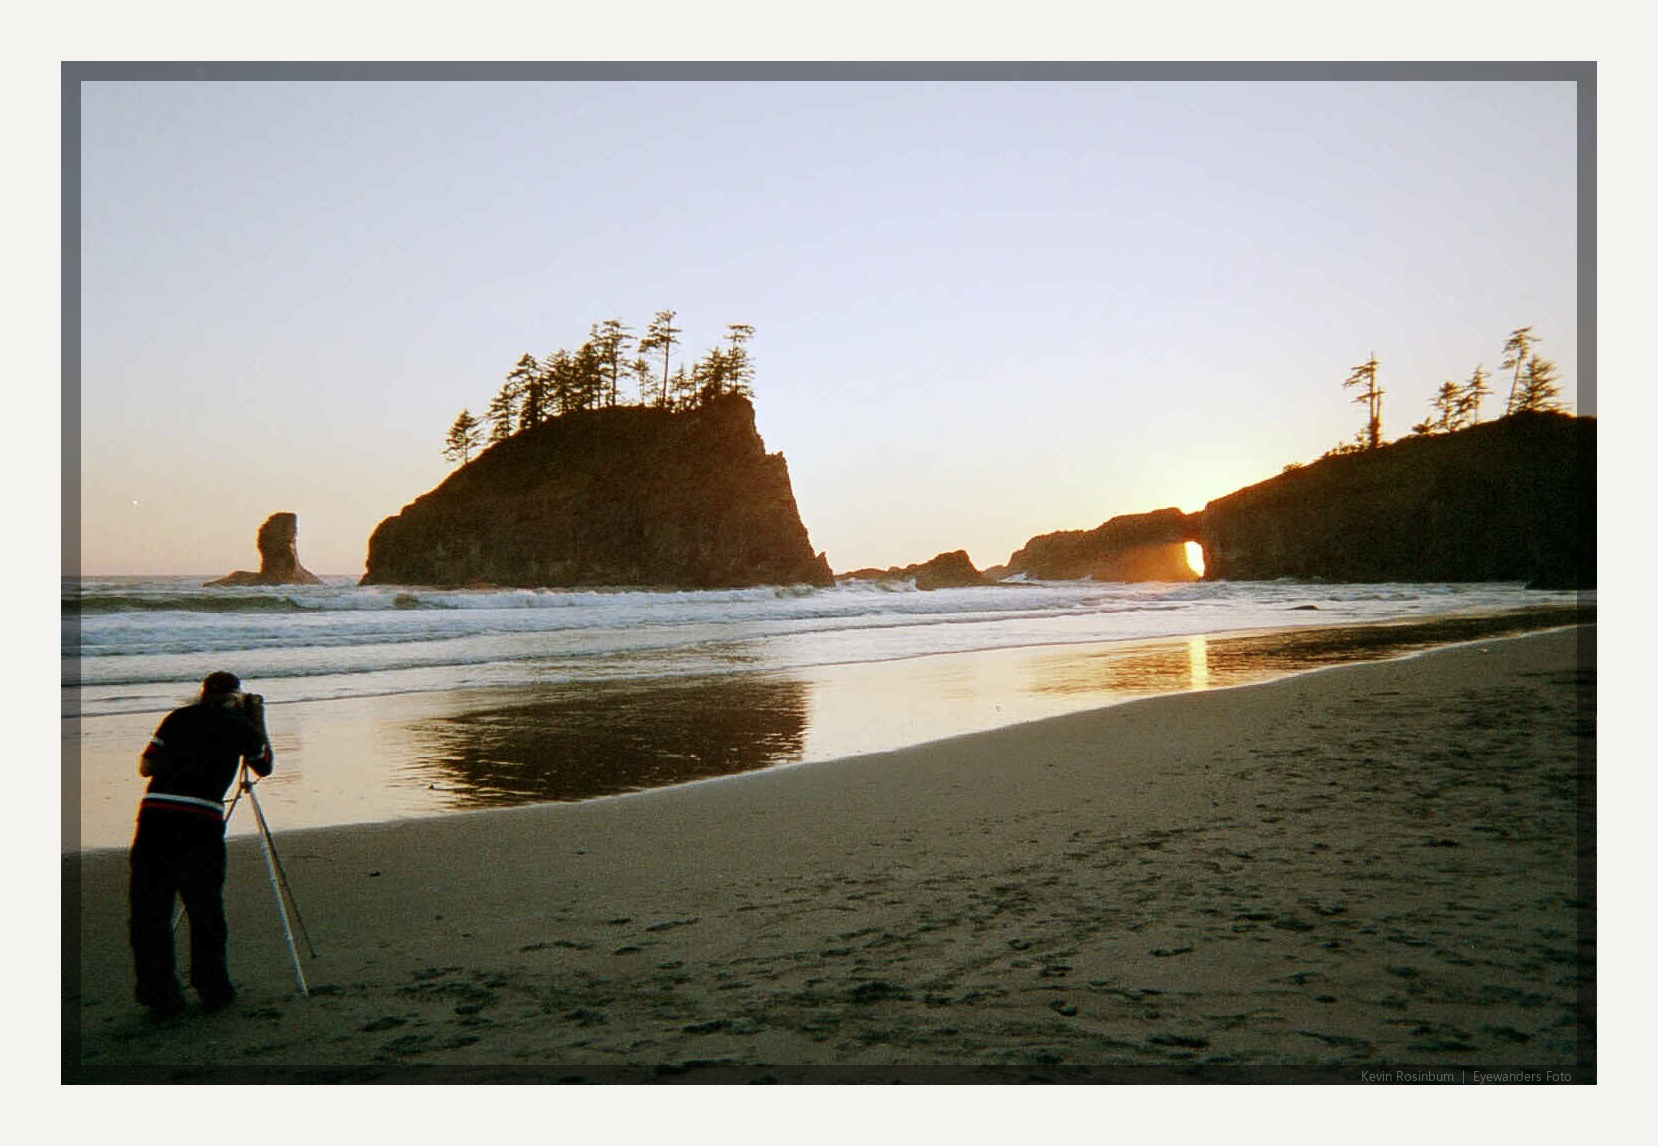 Shot in 1999 on the Washington Coast with a cheap,disposable film camera